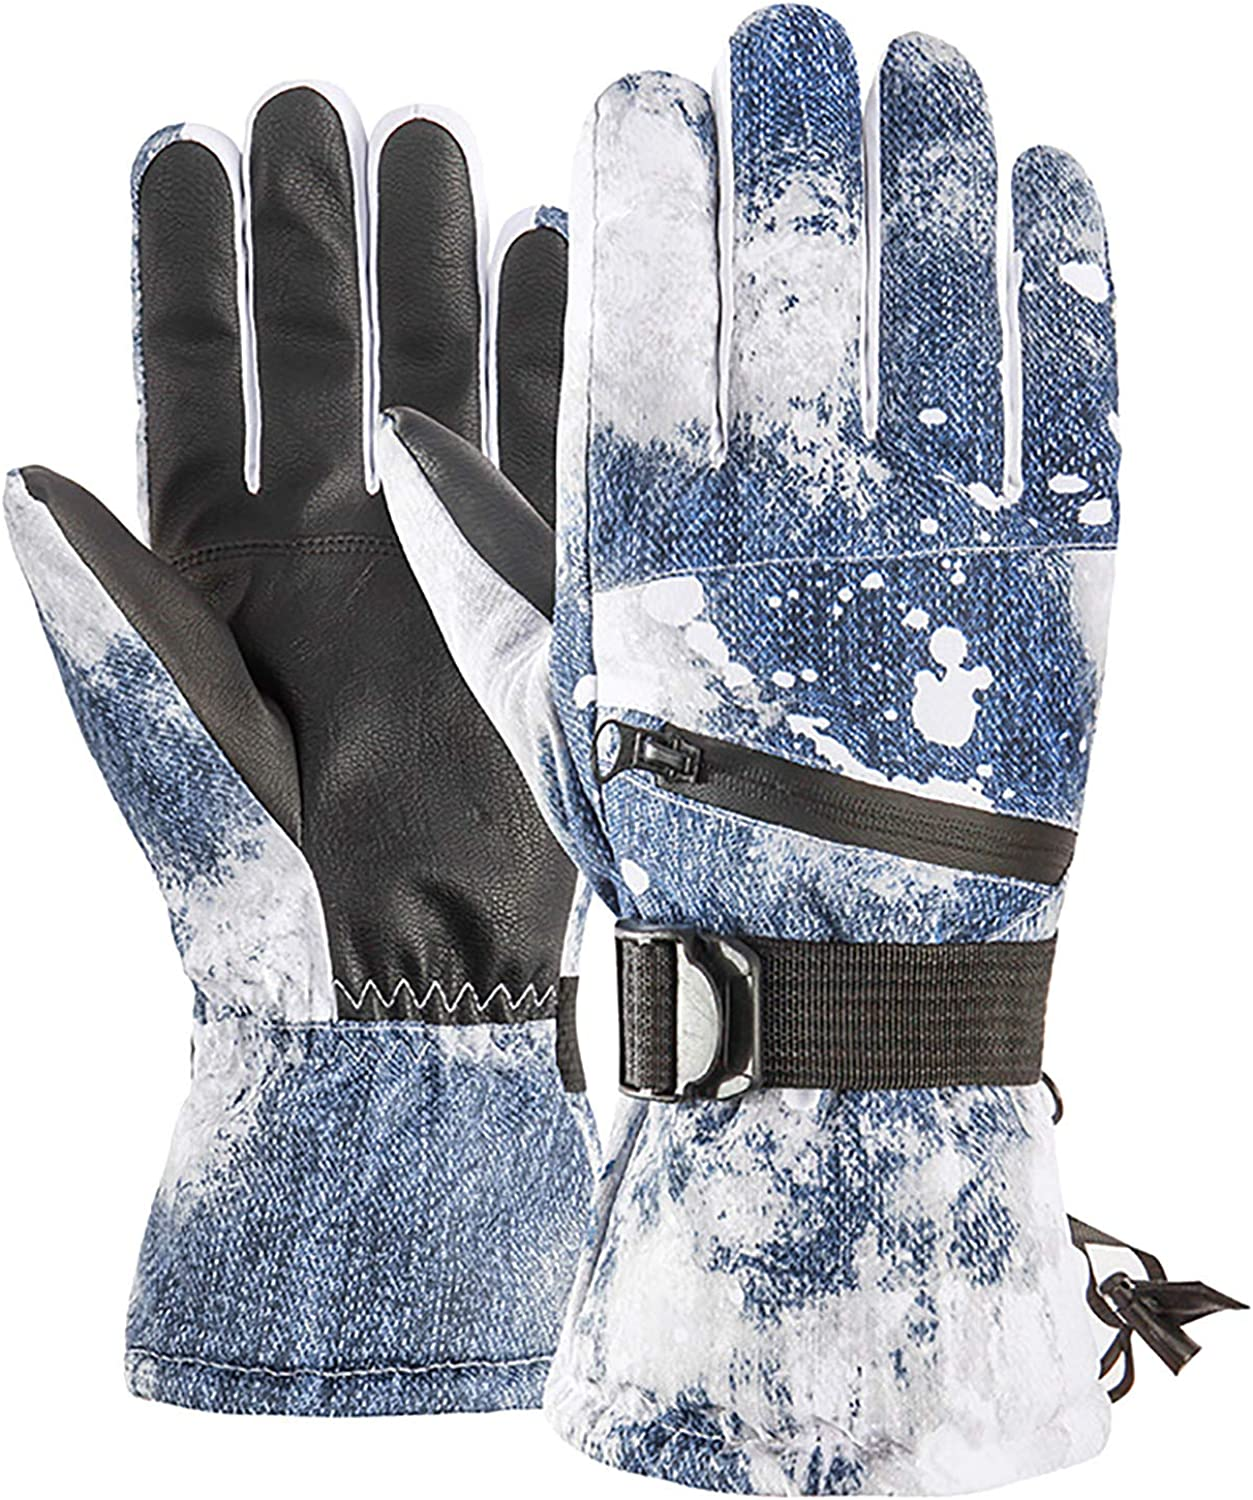 Men's and Women's Ski Gloves, Winter Cold, Warm, Waterproof, Adult Riding Gloves, Controllable Screen.